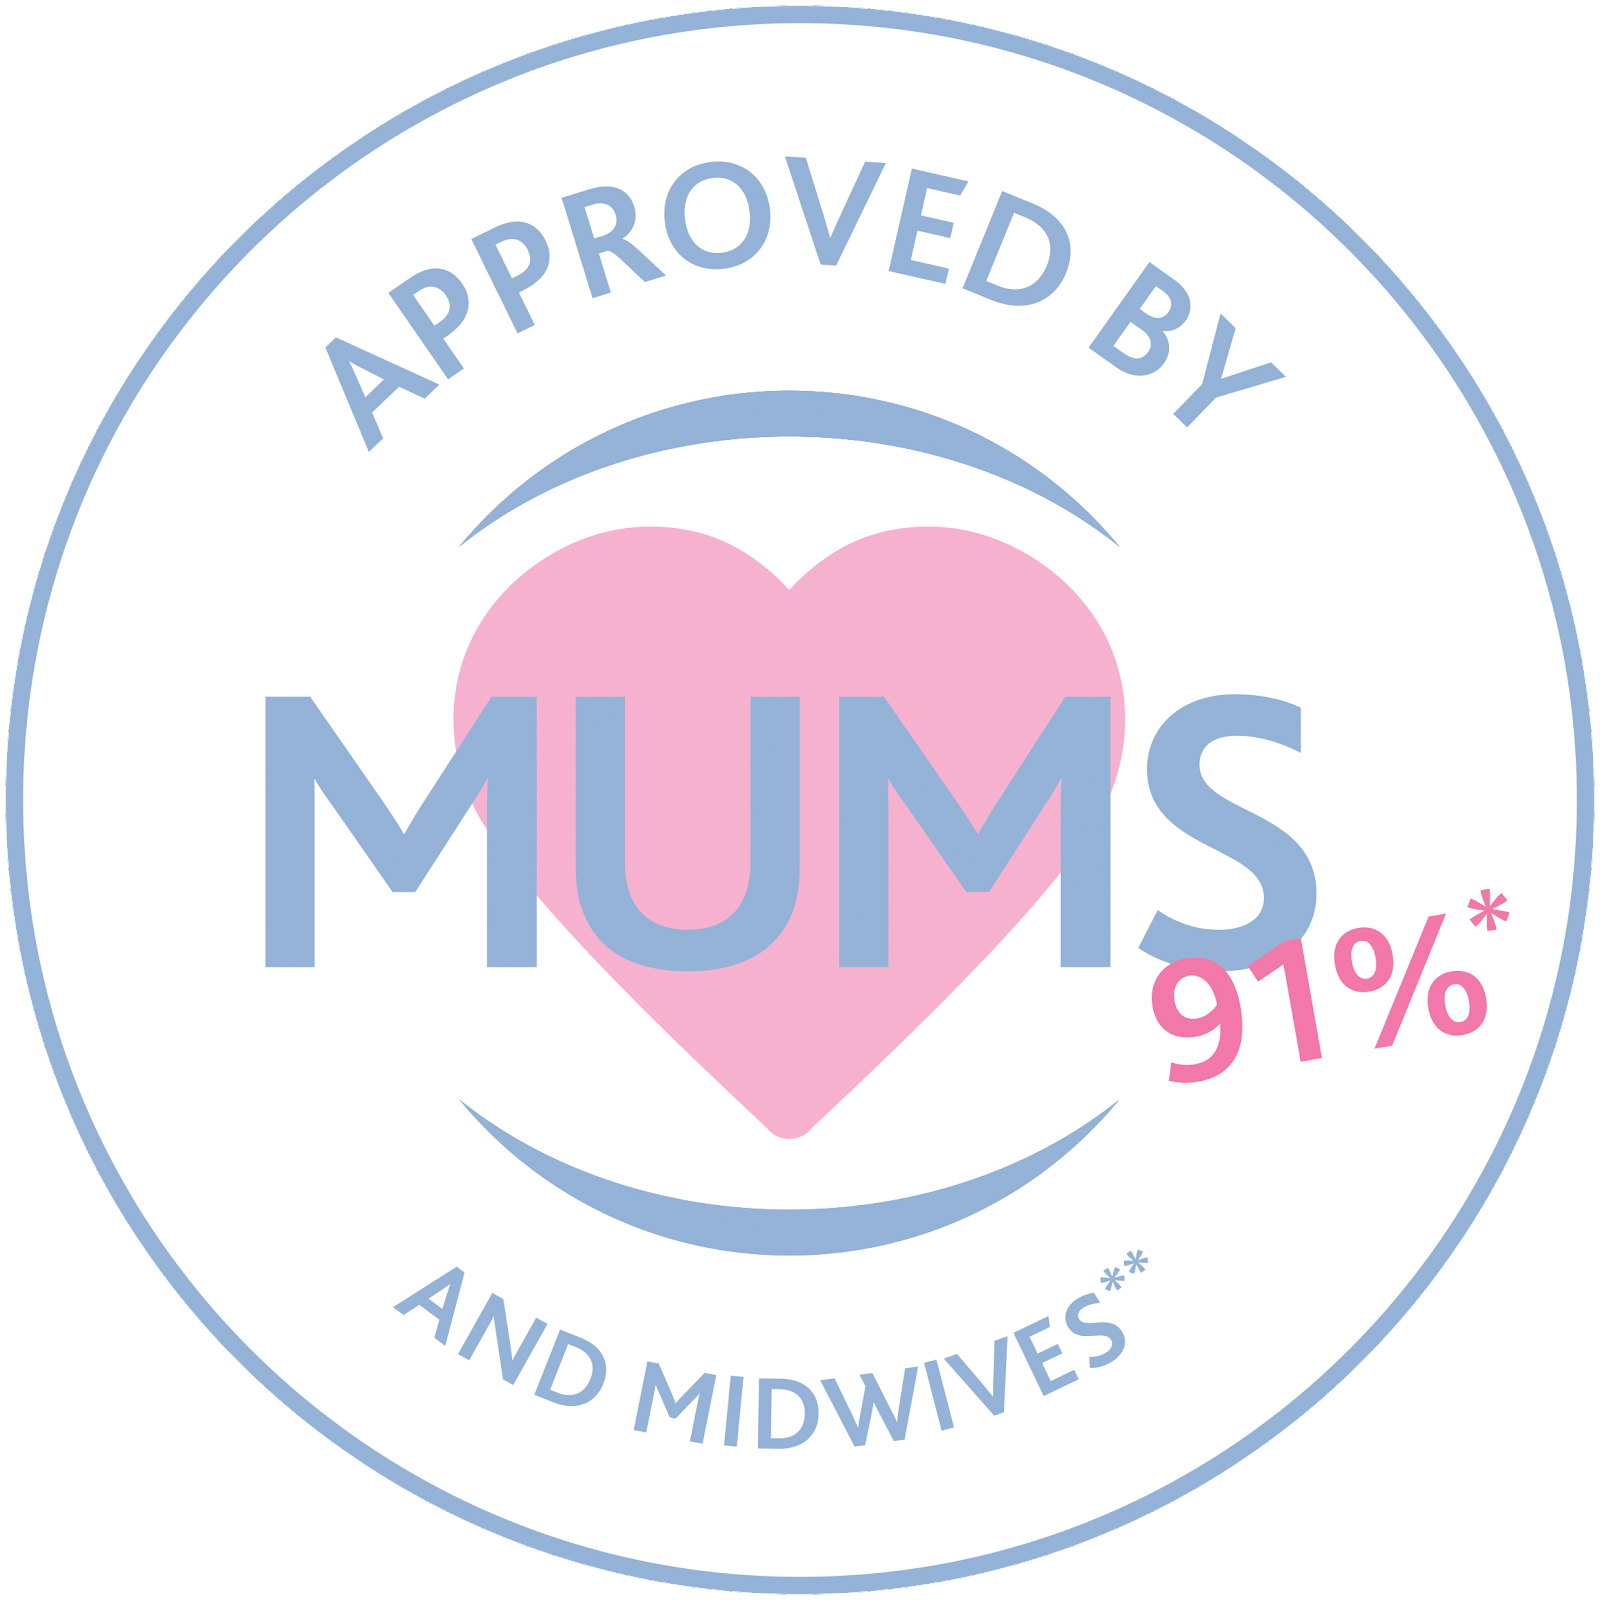 chicco-approved-by-mums-91-copy.png